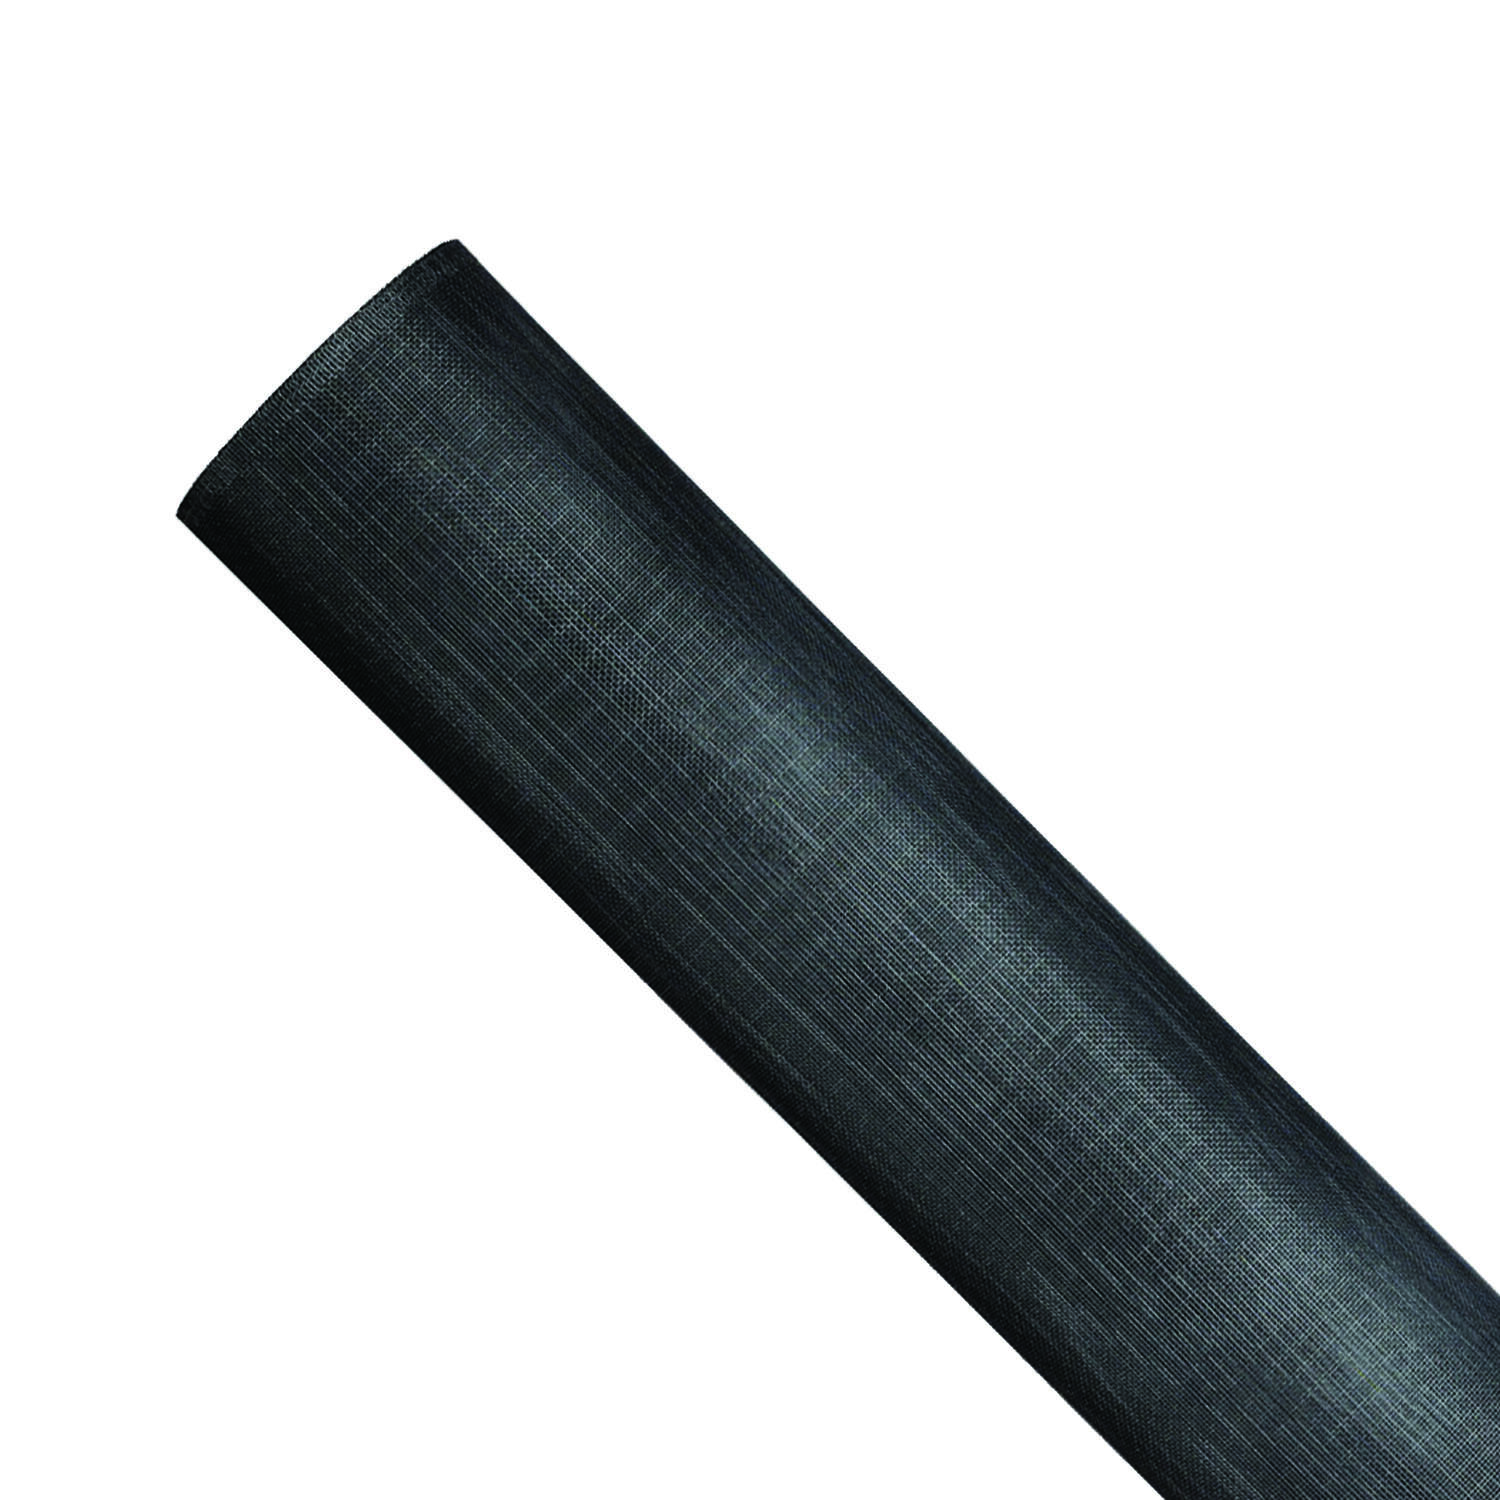 Adfors 36 in. W x 100 ft. L Charcoal Aluminum Insect Screen Cloth